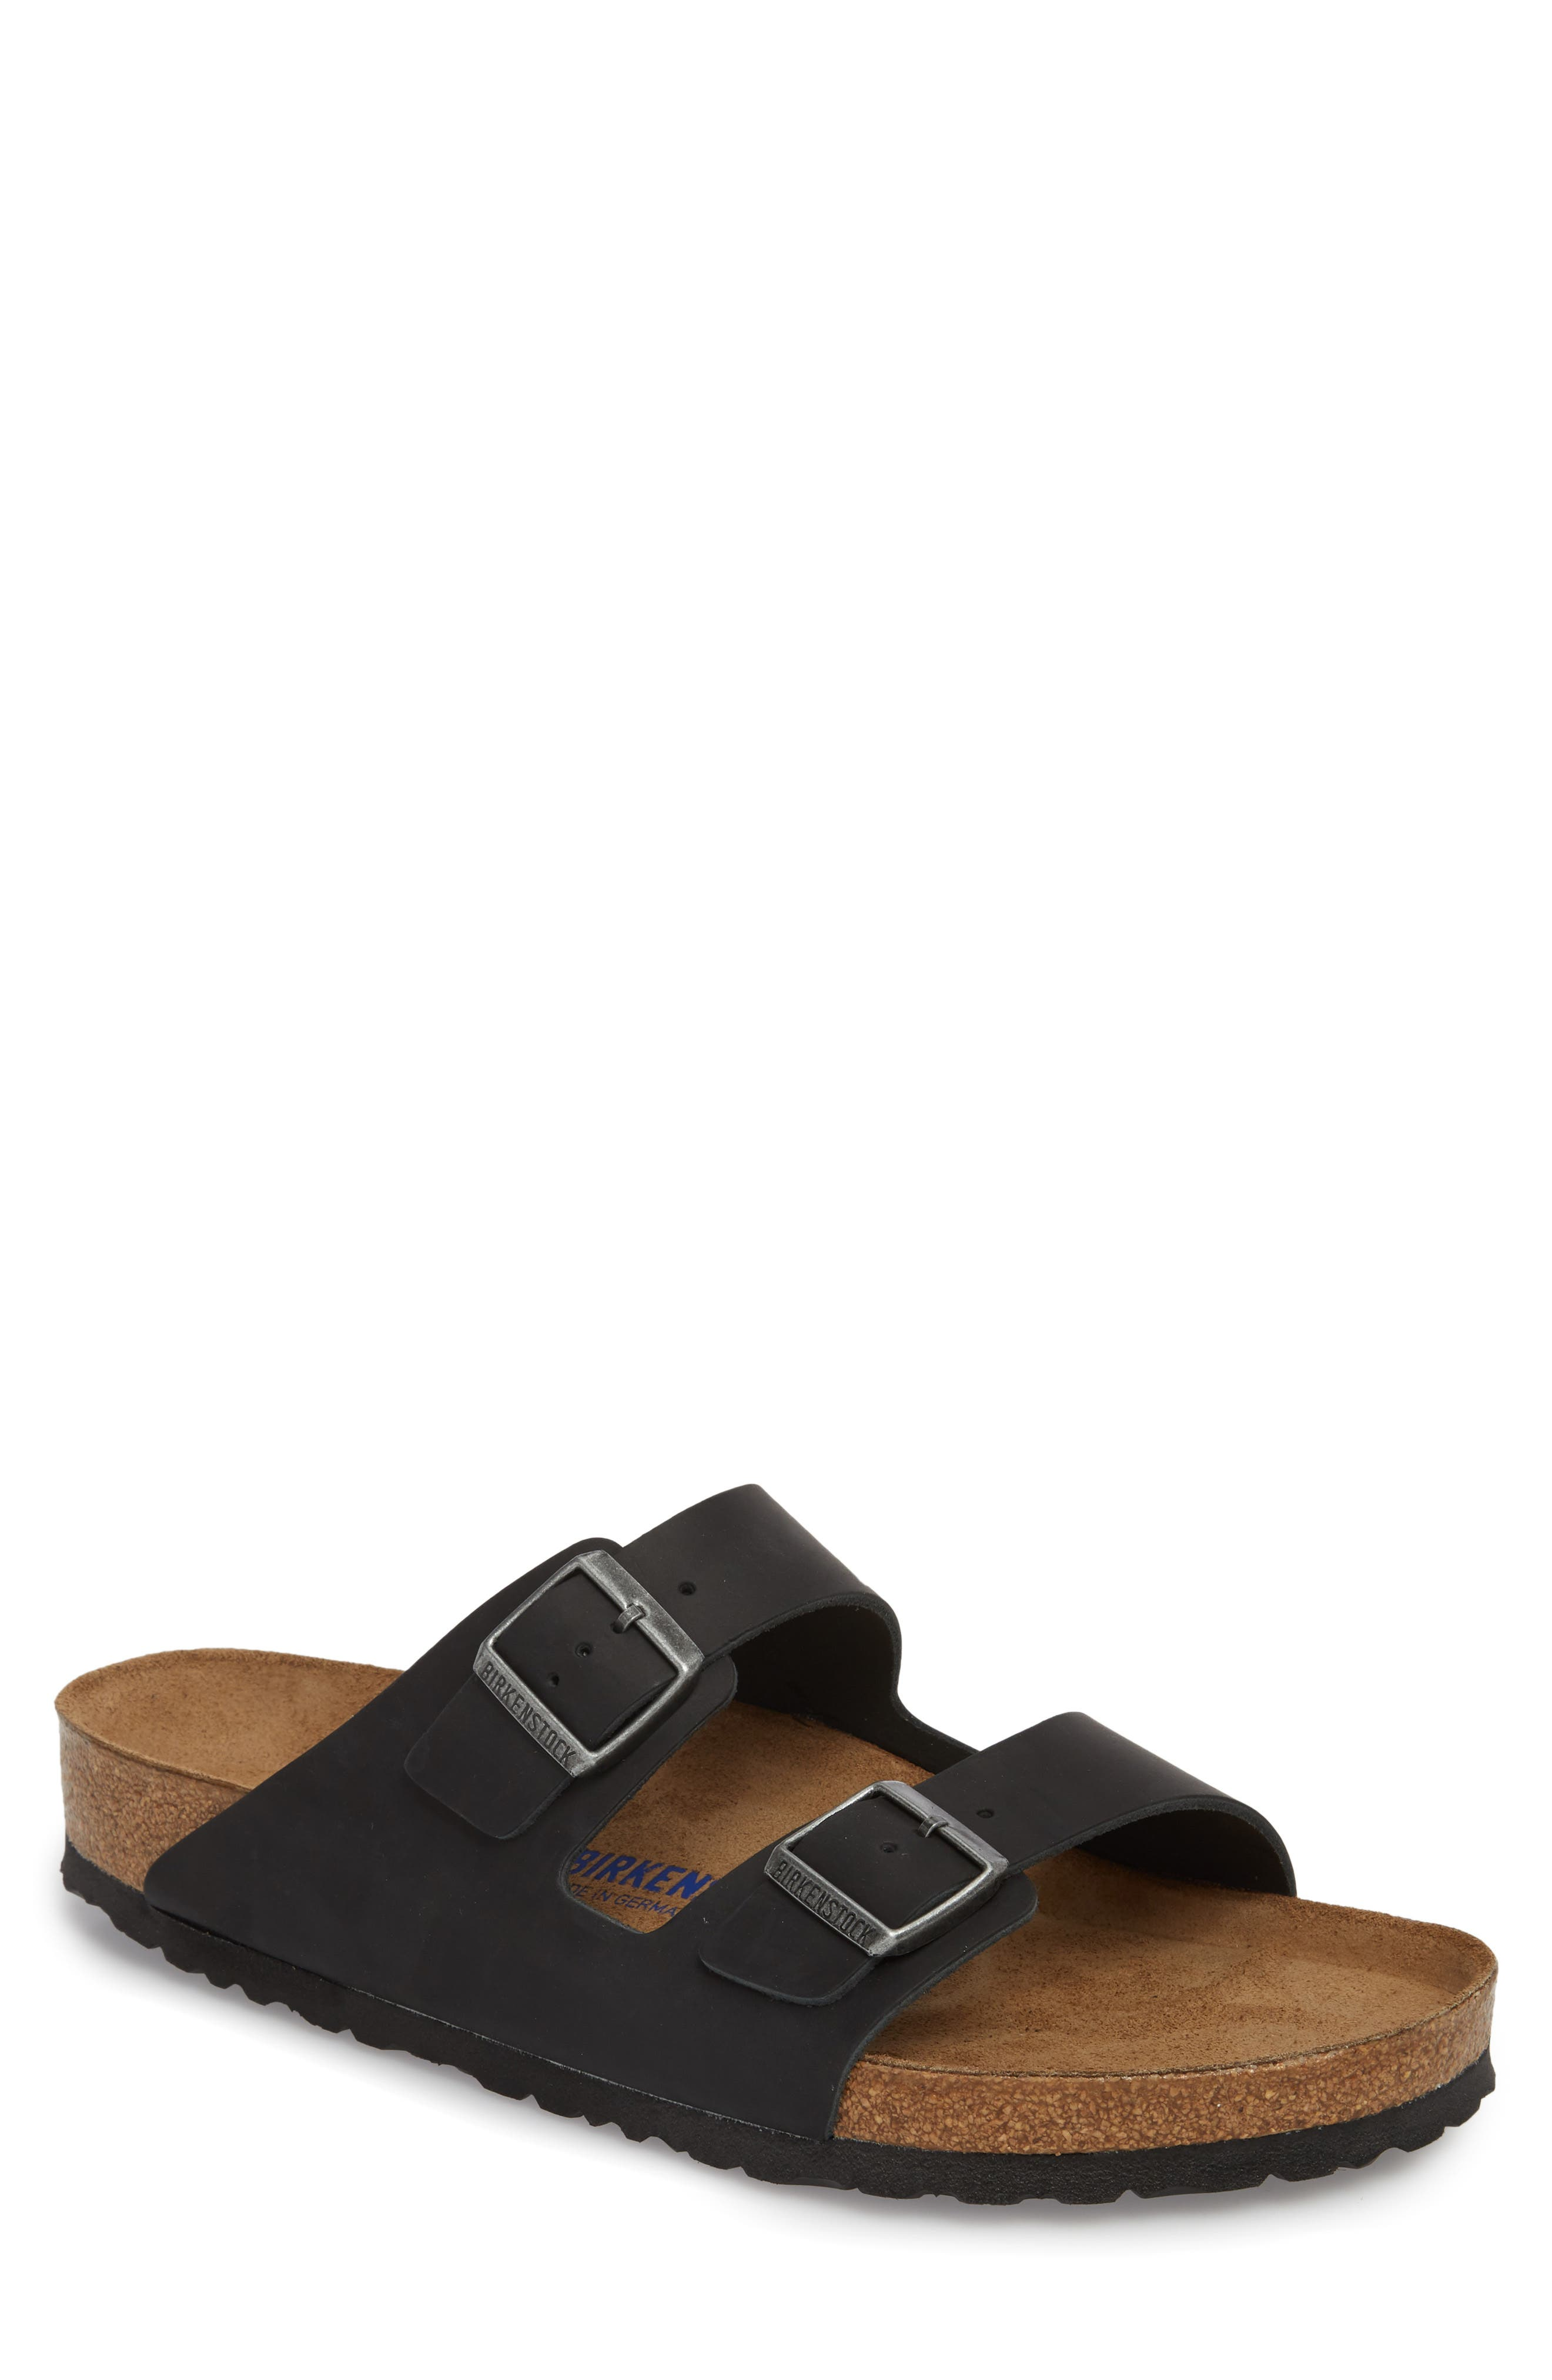 'Arizona Soft' Slide,                             Main thumbnail 1, color,                             Black Suede